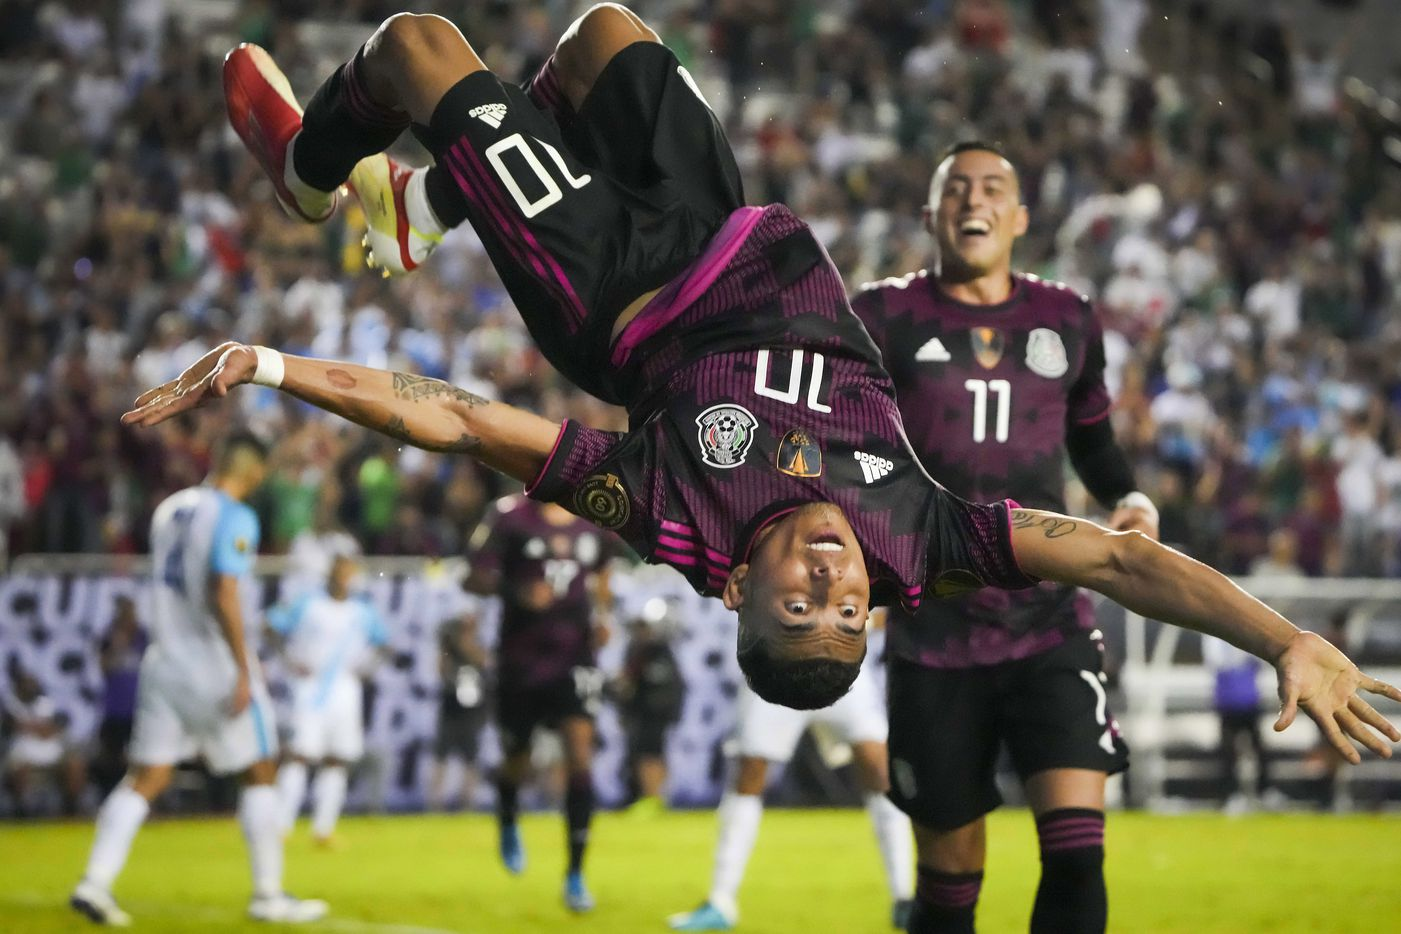 Mexico midfielder Orbelin Pineda celebrates with a flip after scoring past Guatemala goalkeeper Nicholas Hagen as forward Rogelio Funes Mori (11), who scored twice in the game, joins the celebration during the second half of a CONCACAF Gold Cup Group A soccer match at the Cotton Bowl on Wednesday, July 14, 2021, in Dallas.